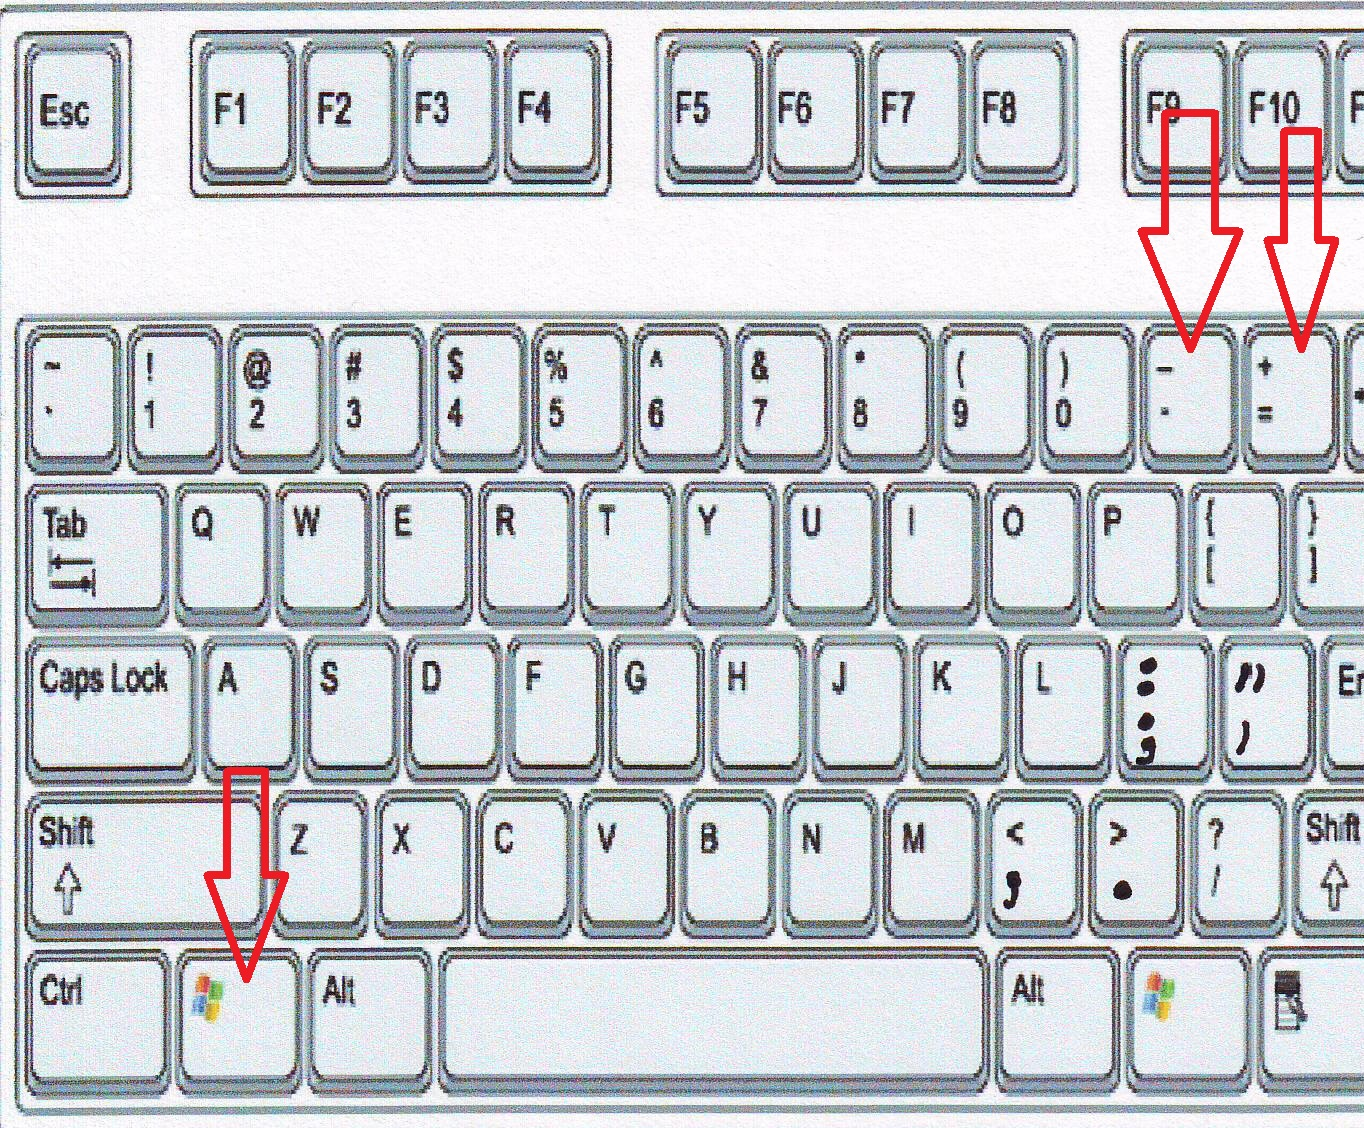 Shortcut Key To Zoom In & Zoom Out In Windows Pc (magnifier)